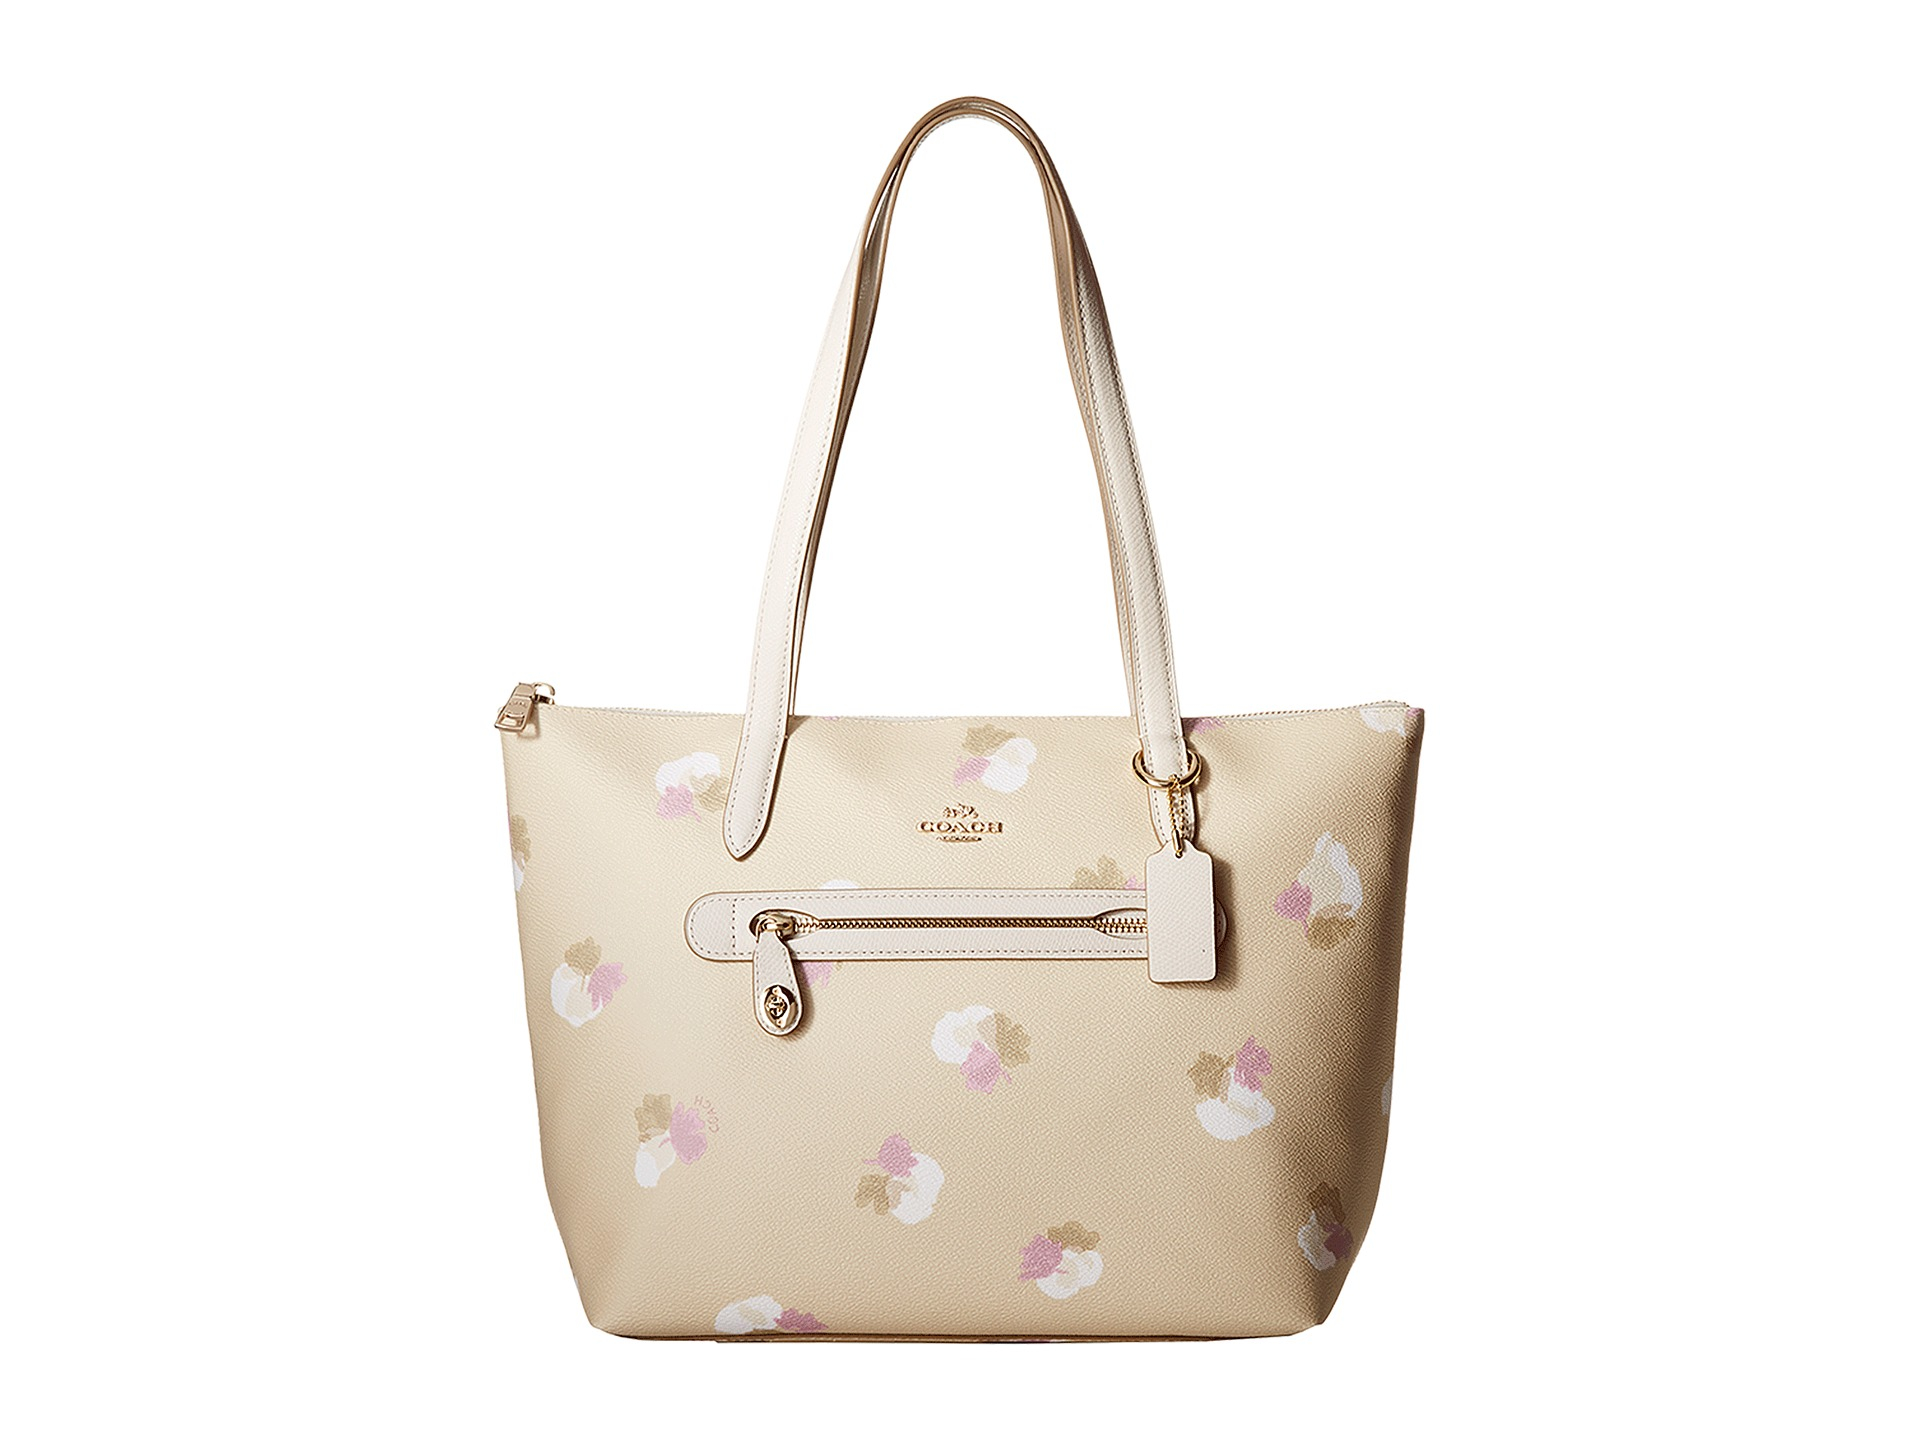 6efb1132d05a1 ... best greece lyst coach whls floral printed taylor tote in natural 7d7e6  d4048 c9a33 52a83